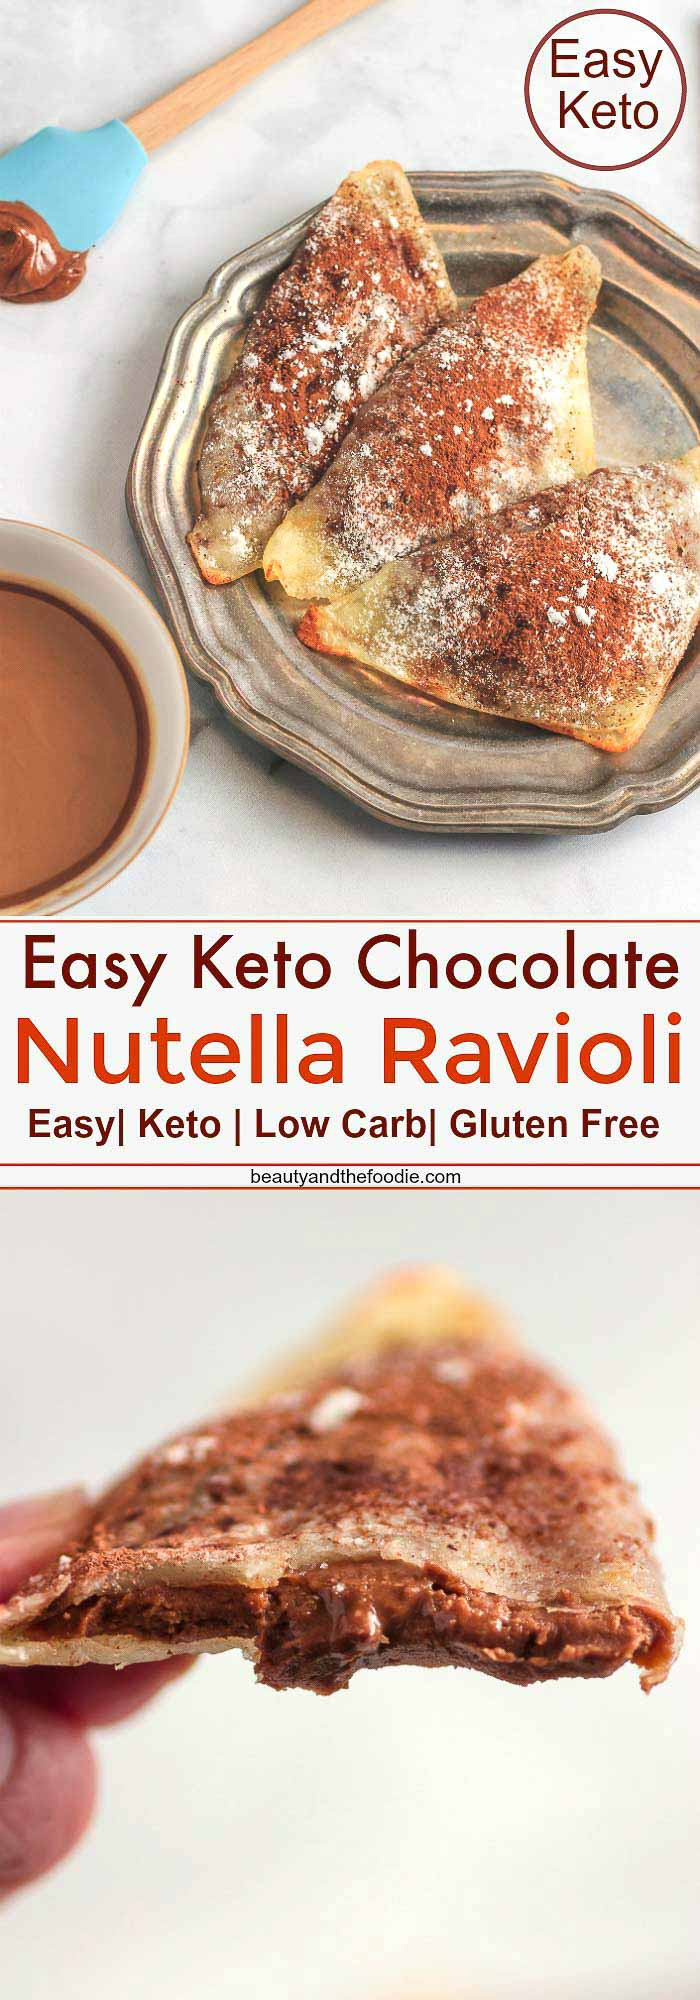 Easy Keto Chocolate Nutella Ravioli- Low Carb, keto & gluten free